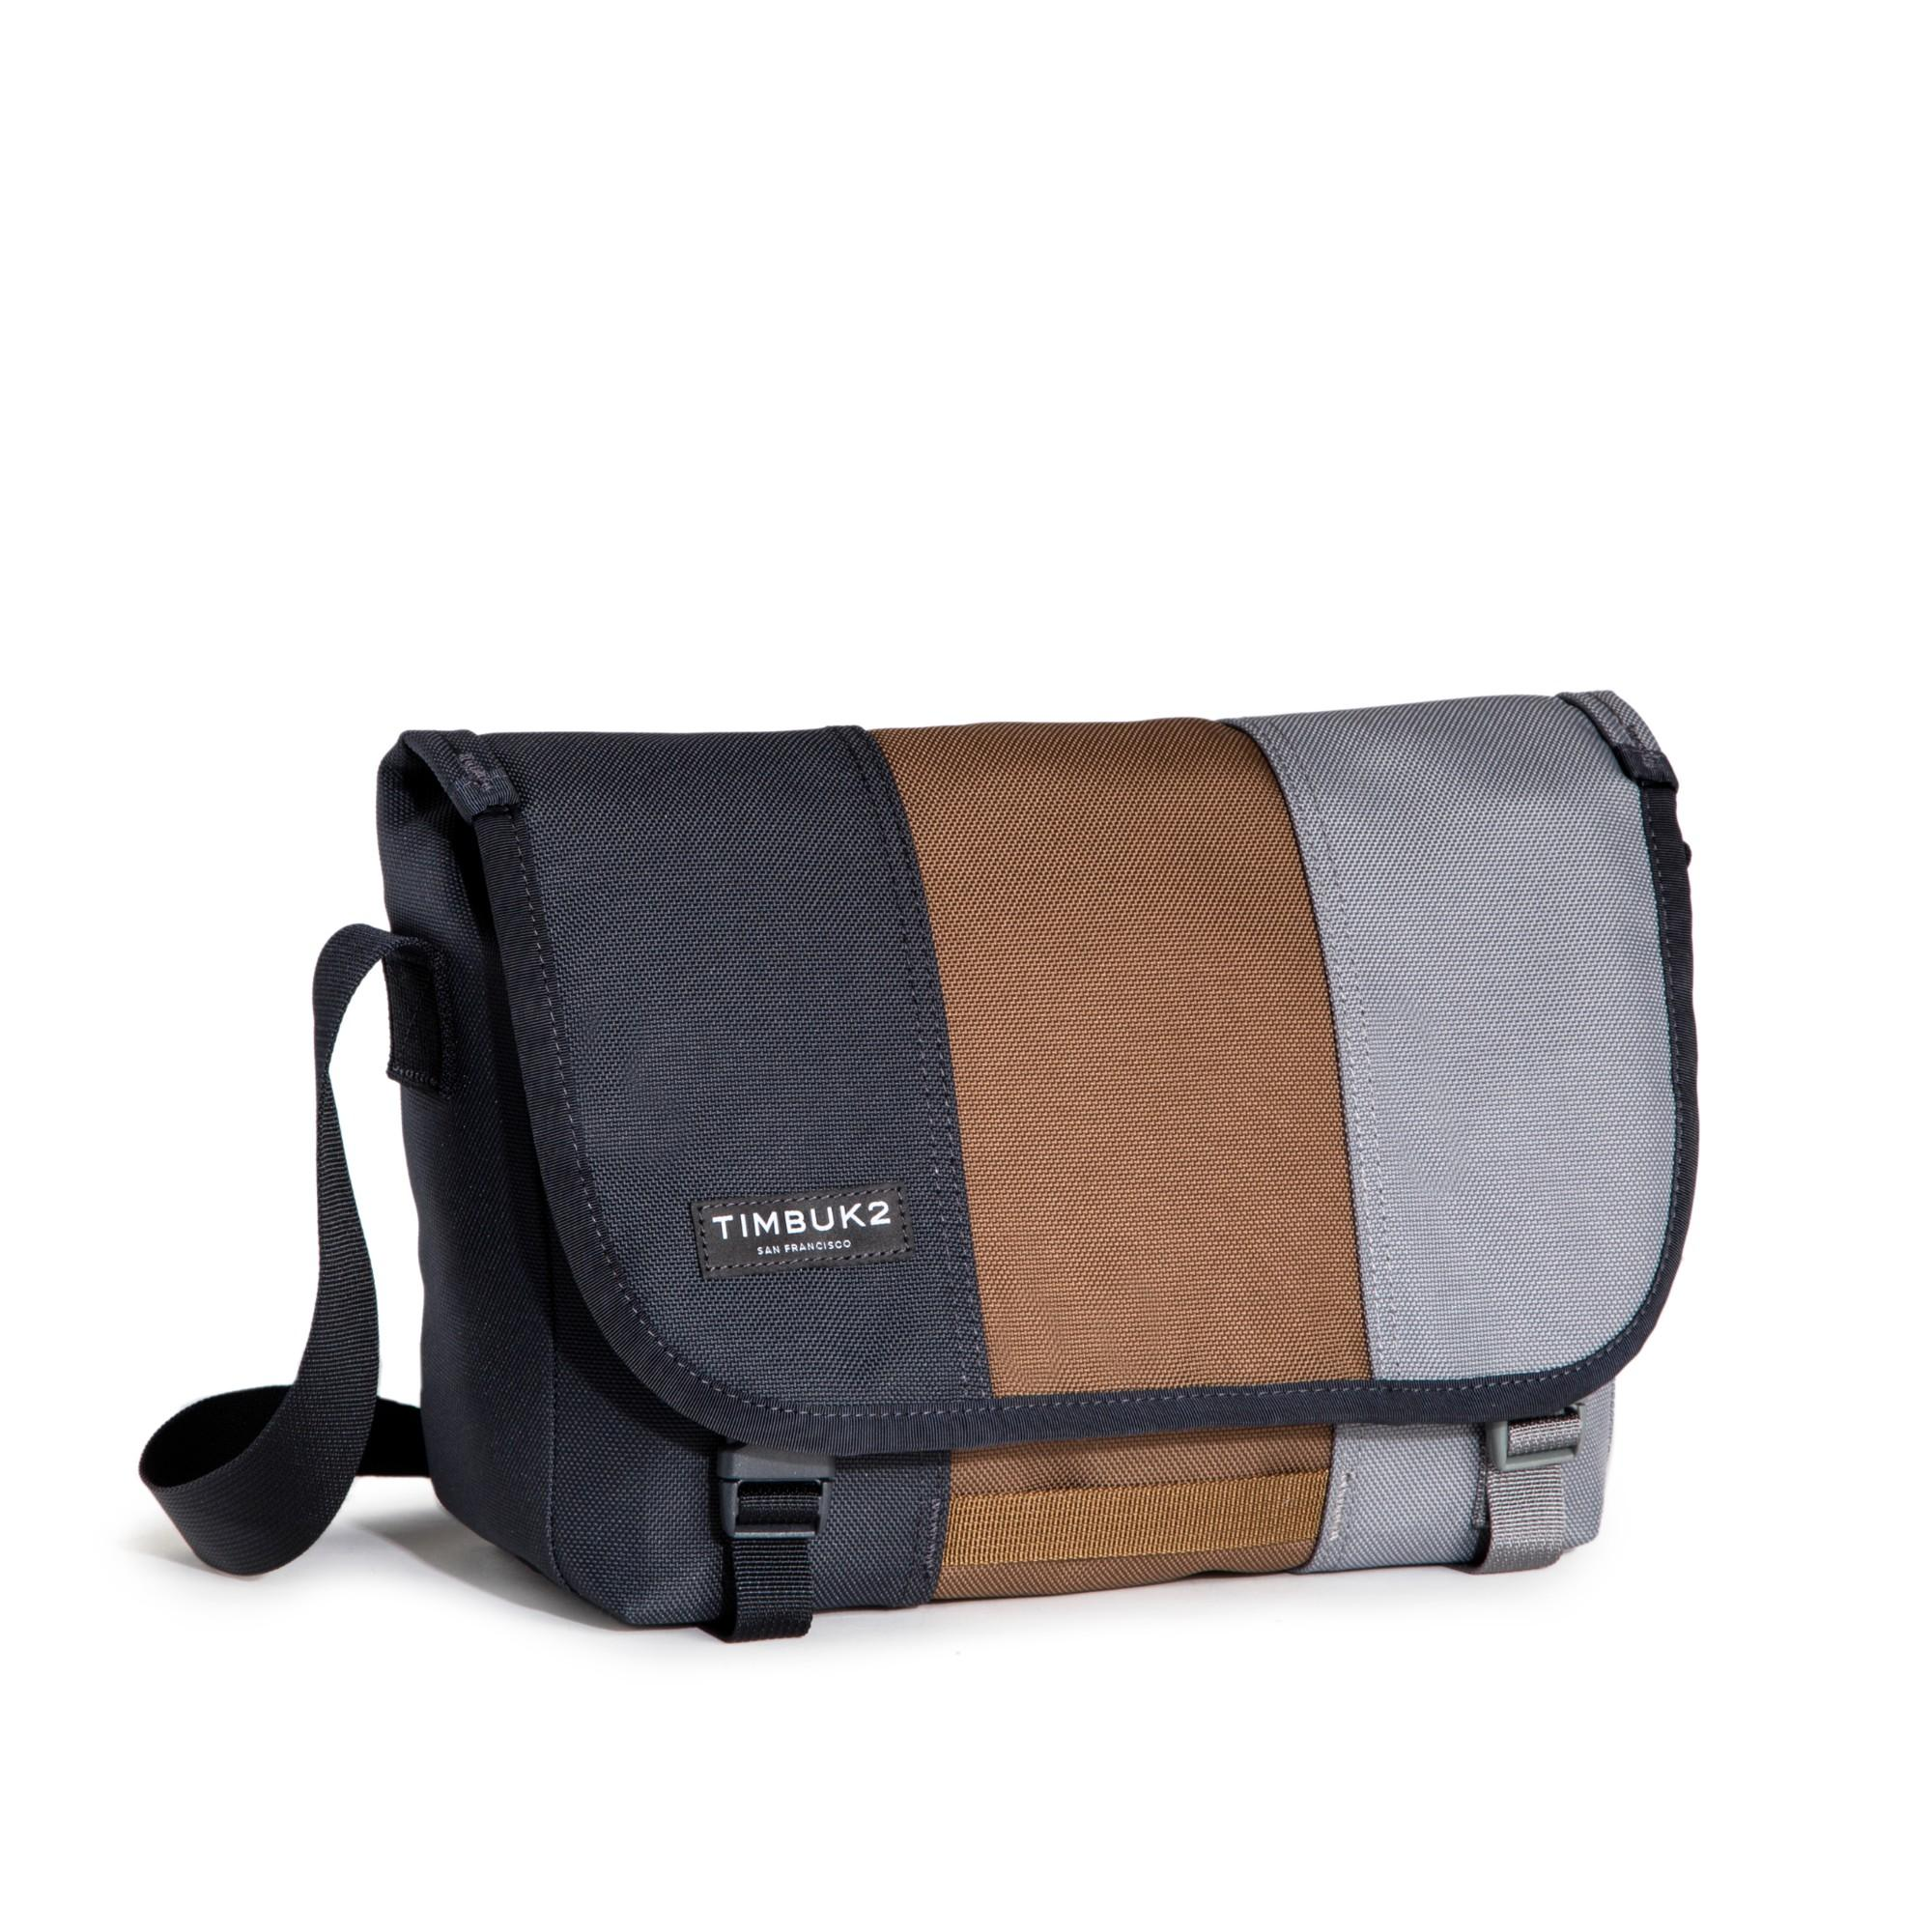 ce63c9522b Messenger Bags 2 - Buy Messenger Bags 2 at Best Price in Singapore ...